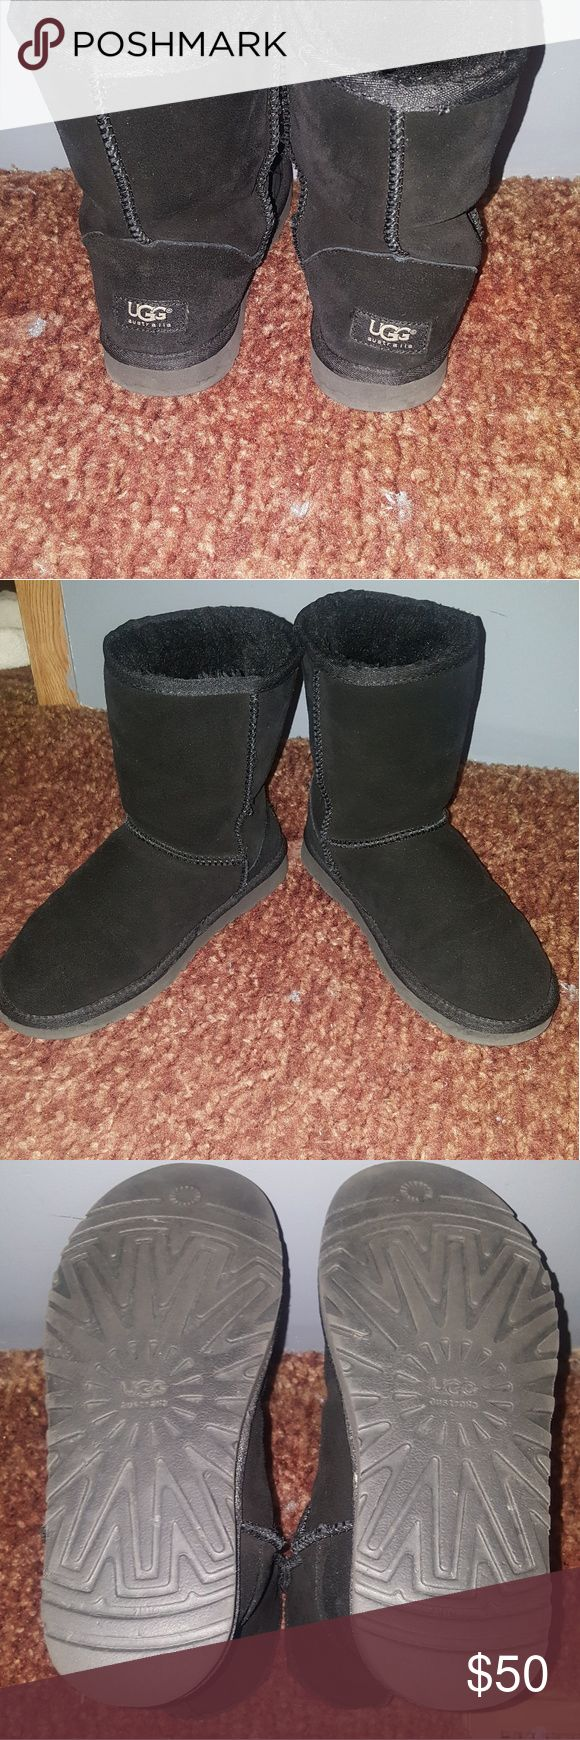 Ugg boots... Must go!!! Worn lightly. Doesn't come with original box. Trades are welcomed. UGG Shoes Ankle Boots & Booties